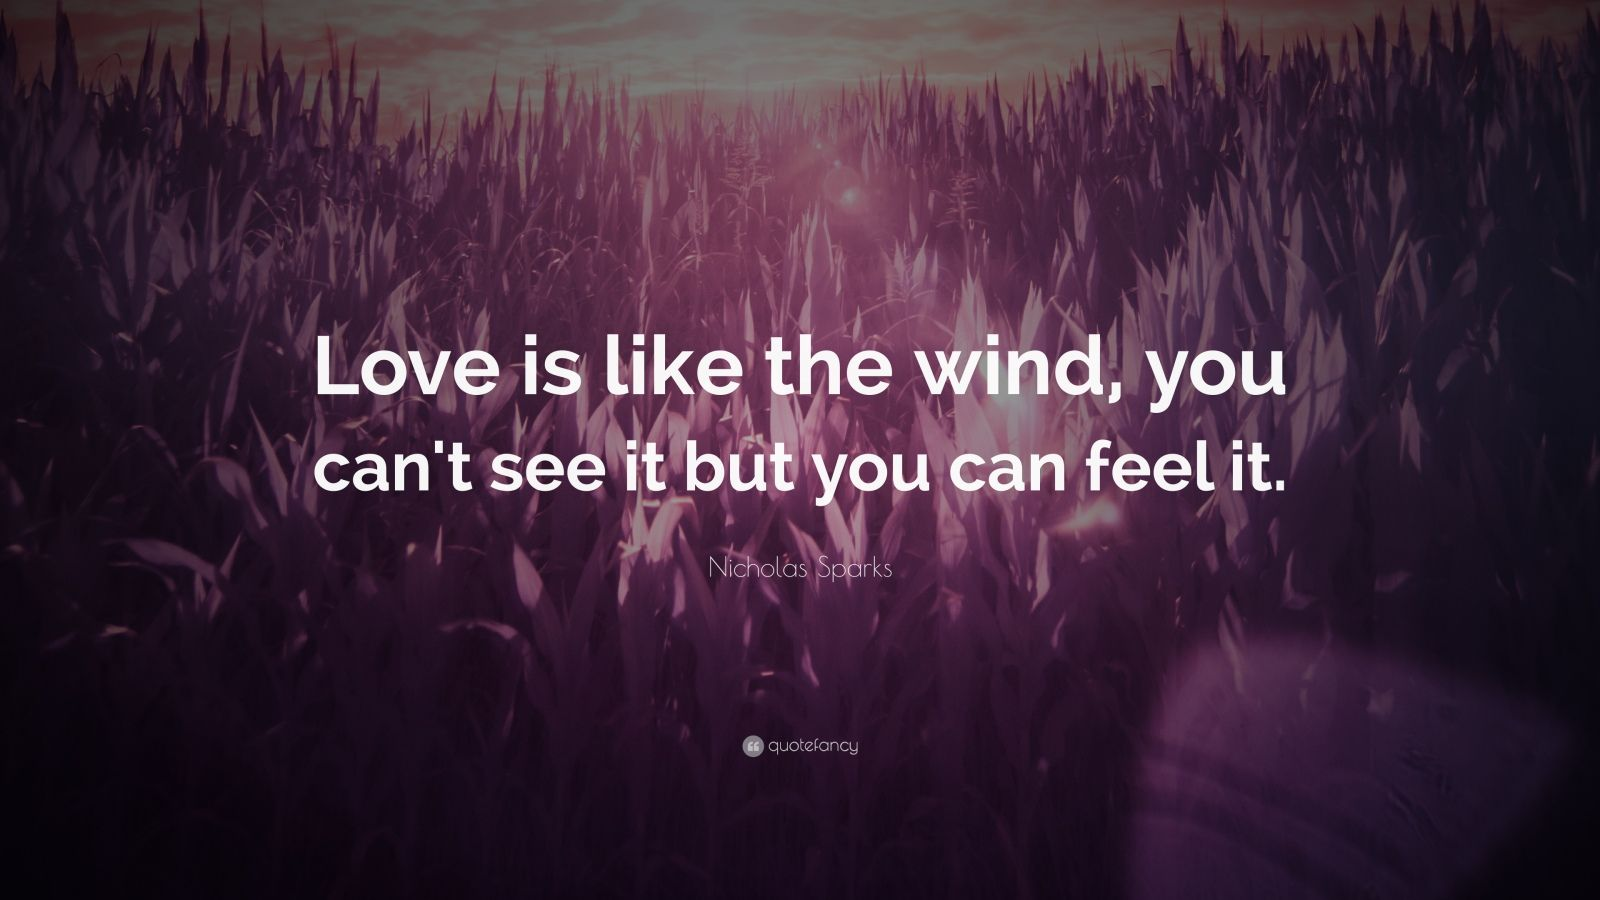 Love Quotes  26 wallpapers    Quotefancy Love Quotes     Love is like the wind  you can t see it